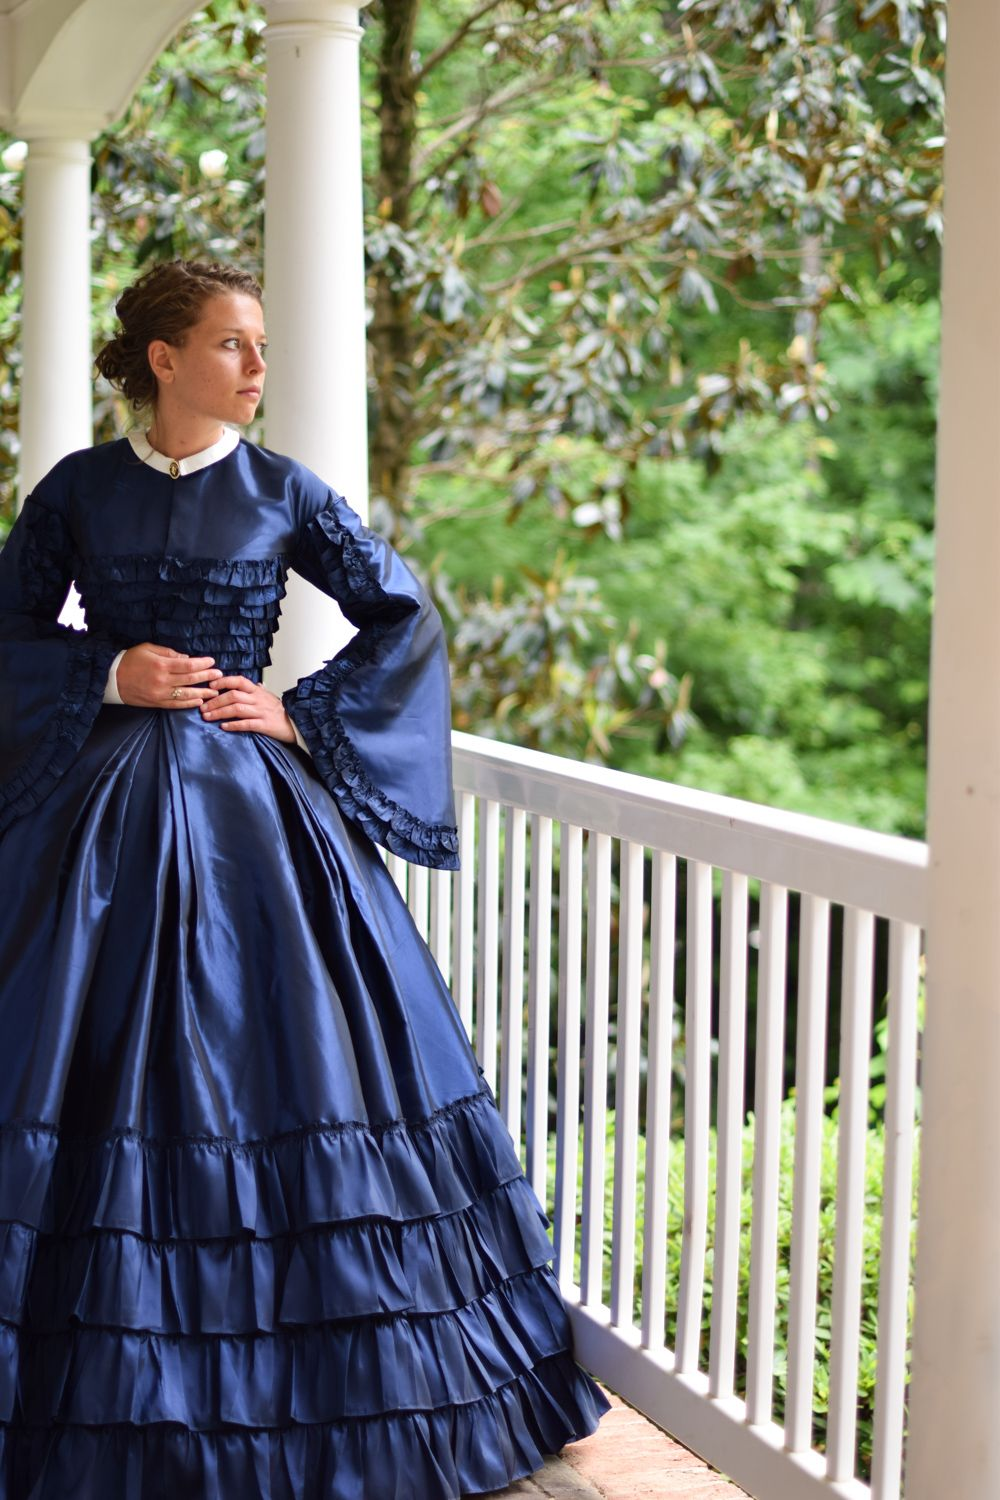 Civil war reenactment dress made by the tailorette